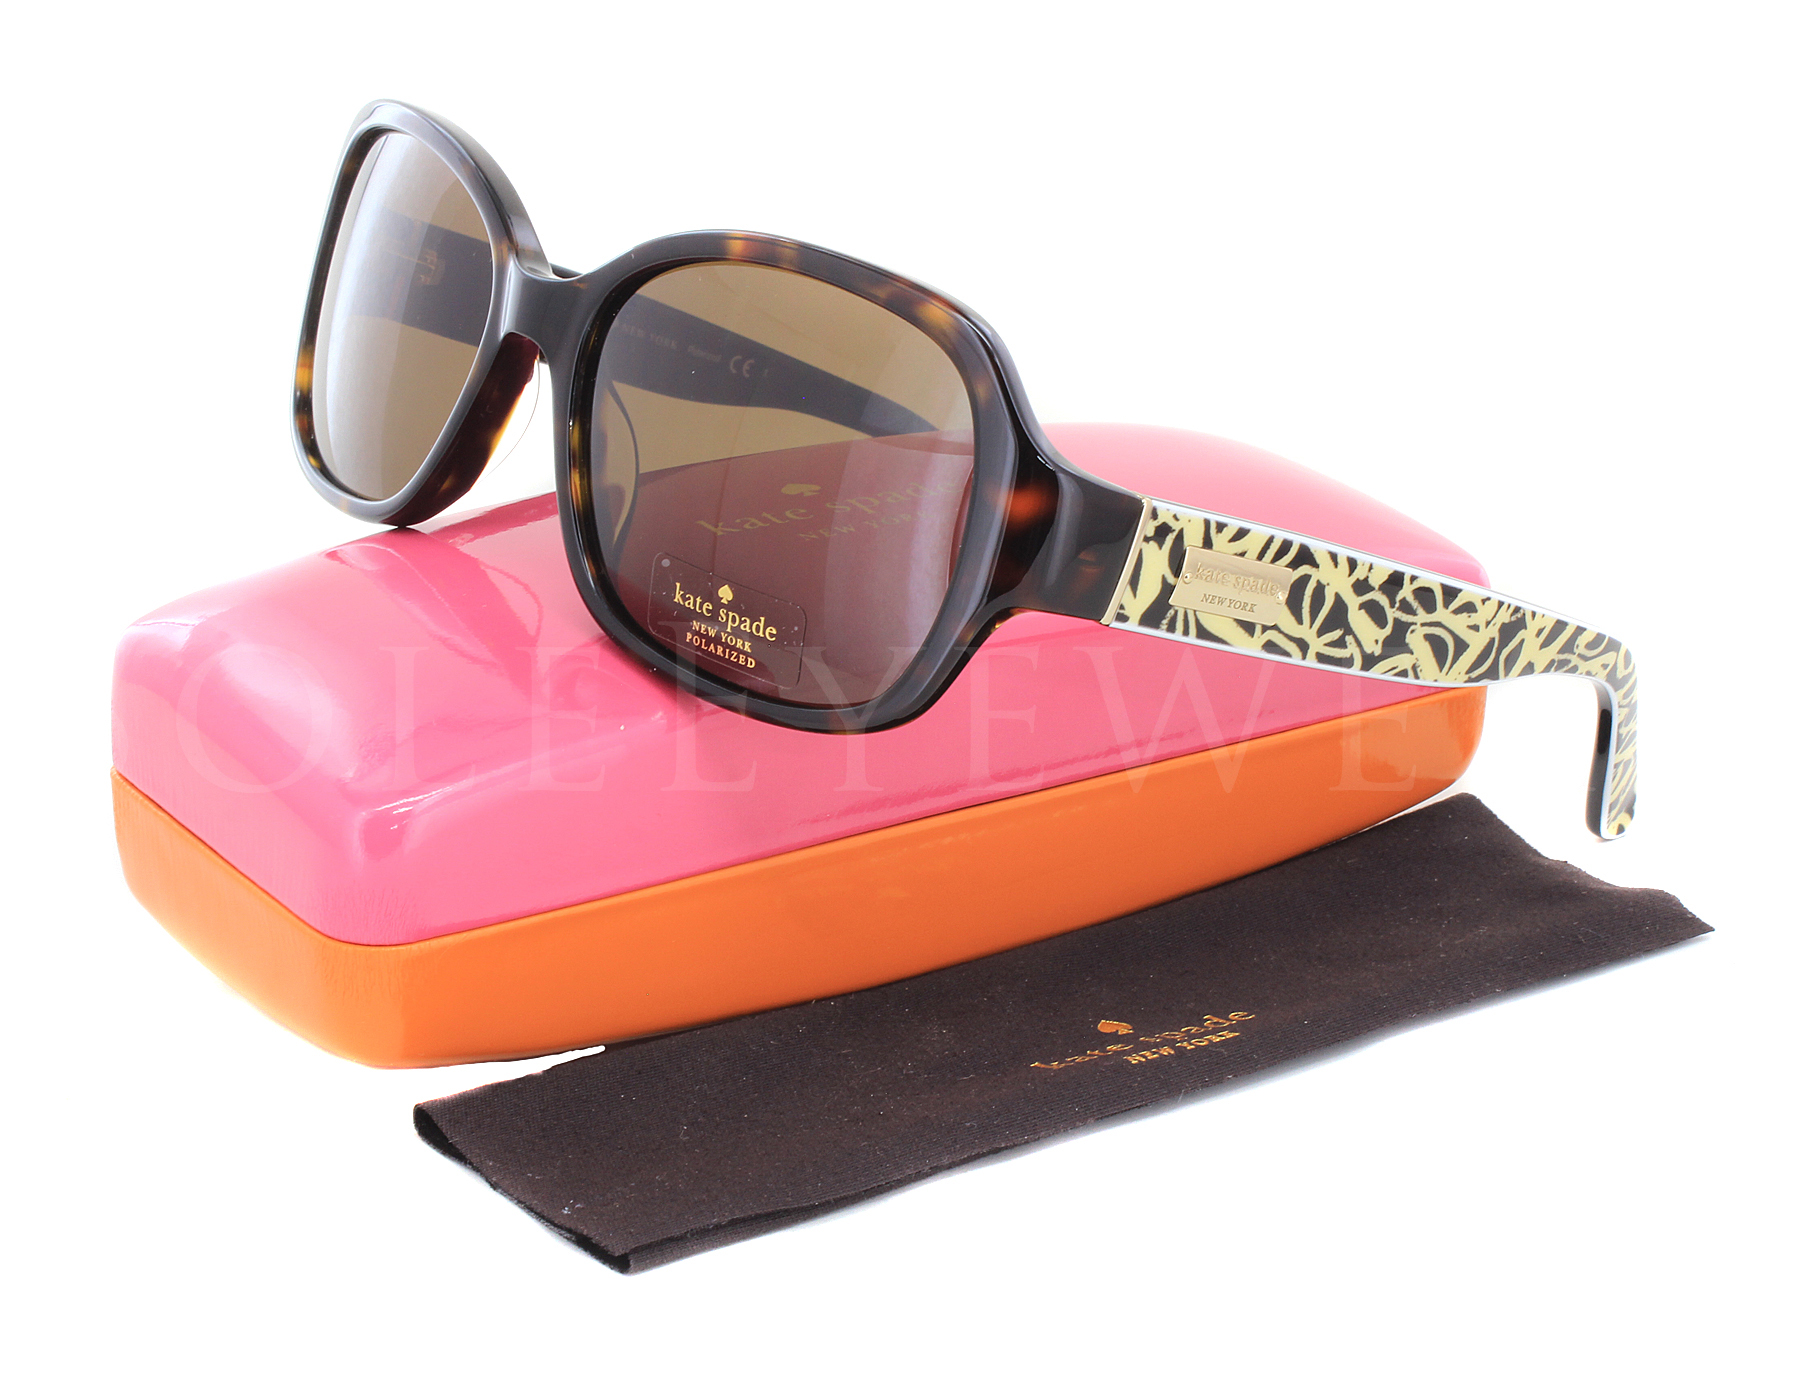 85559c2c3e4 Details about NEW Kate Spade AKIRA P S 86PVW Tortoise   Brown Gradient  Polarized Sunglasses